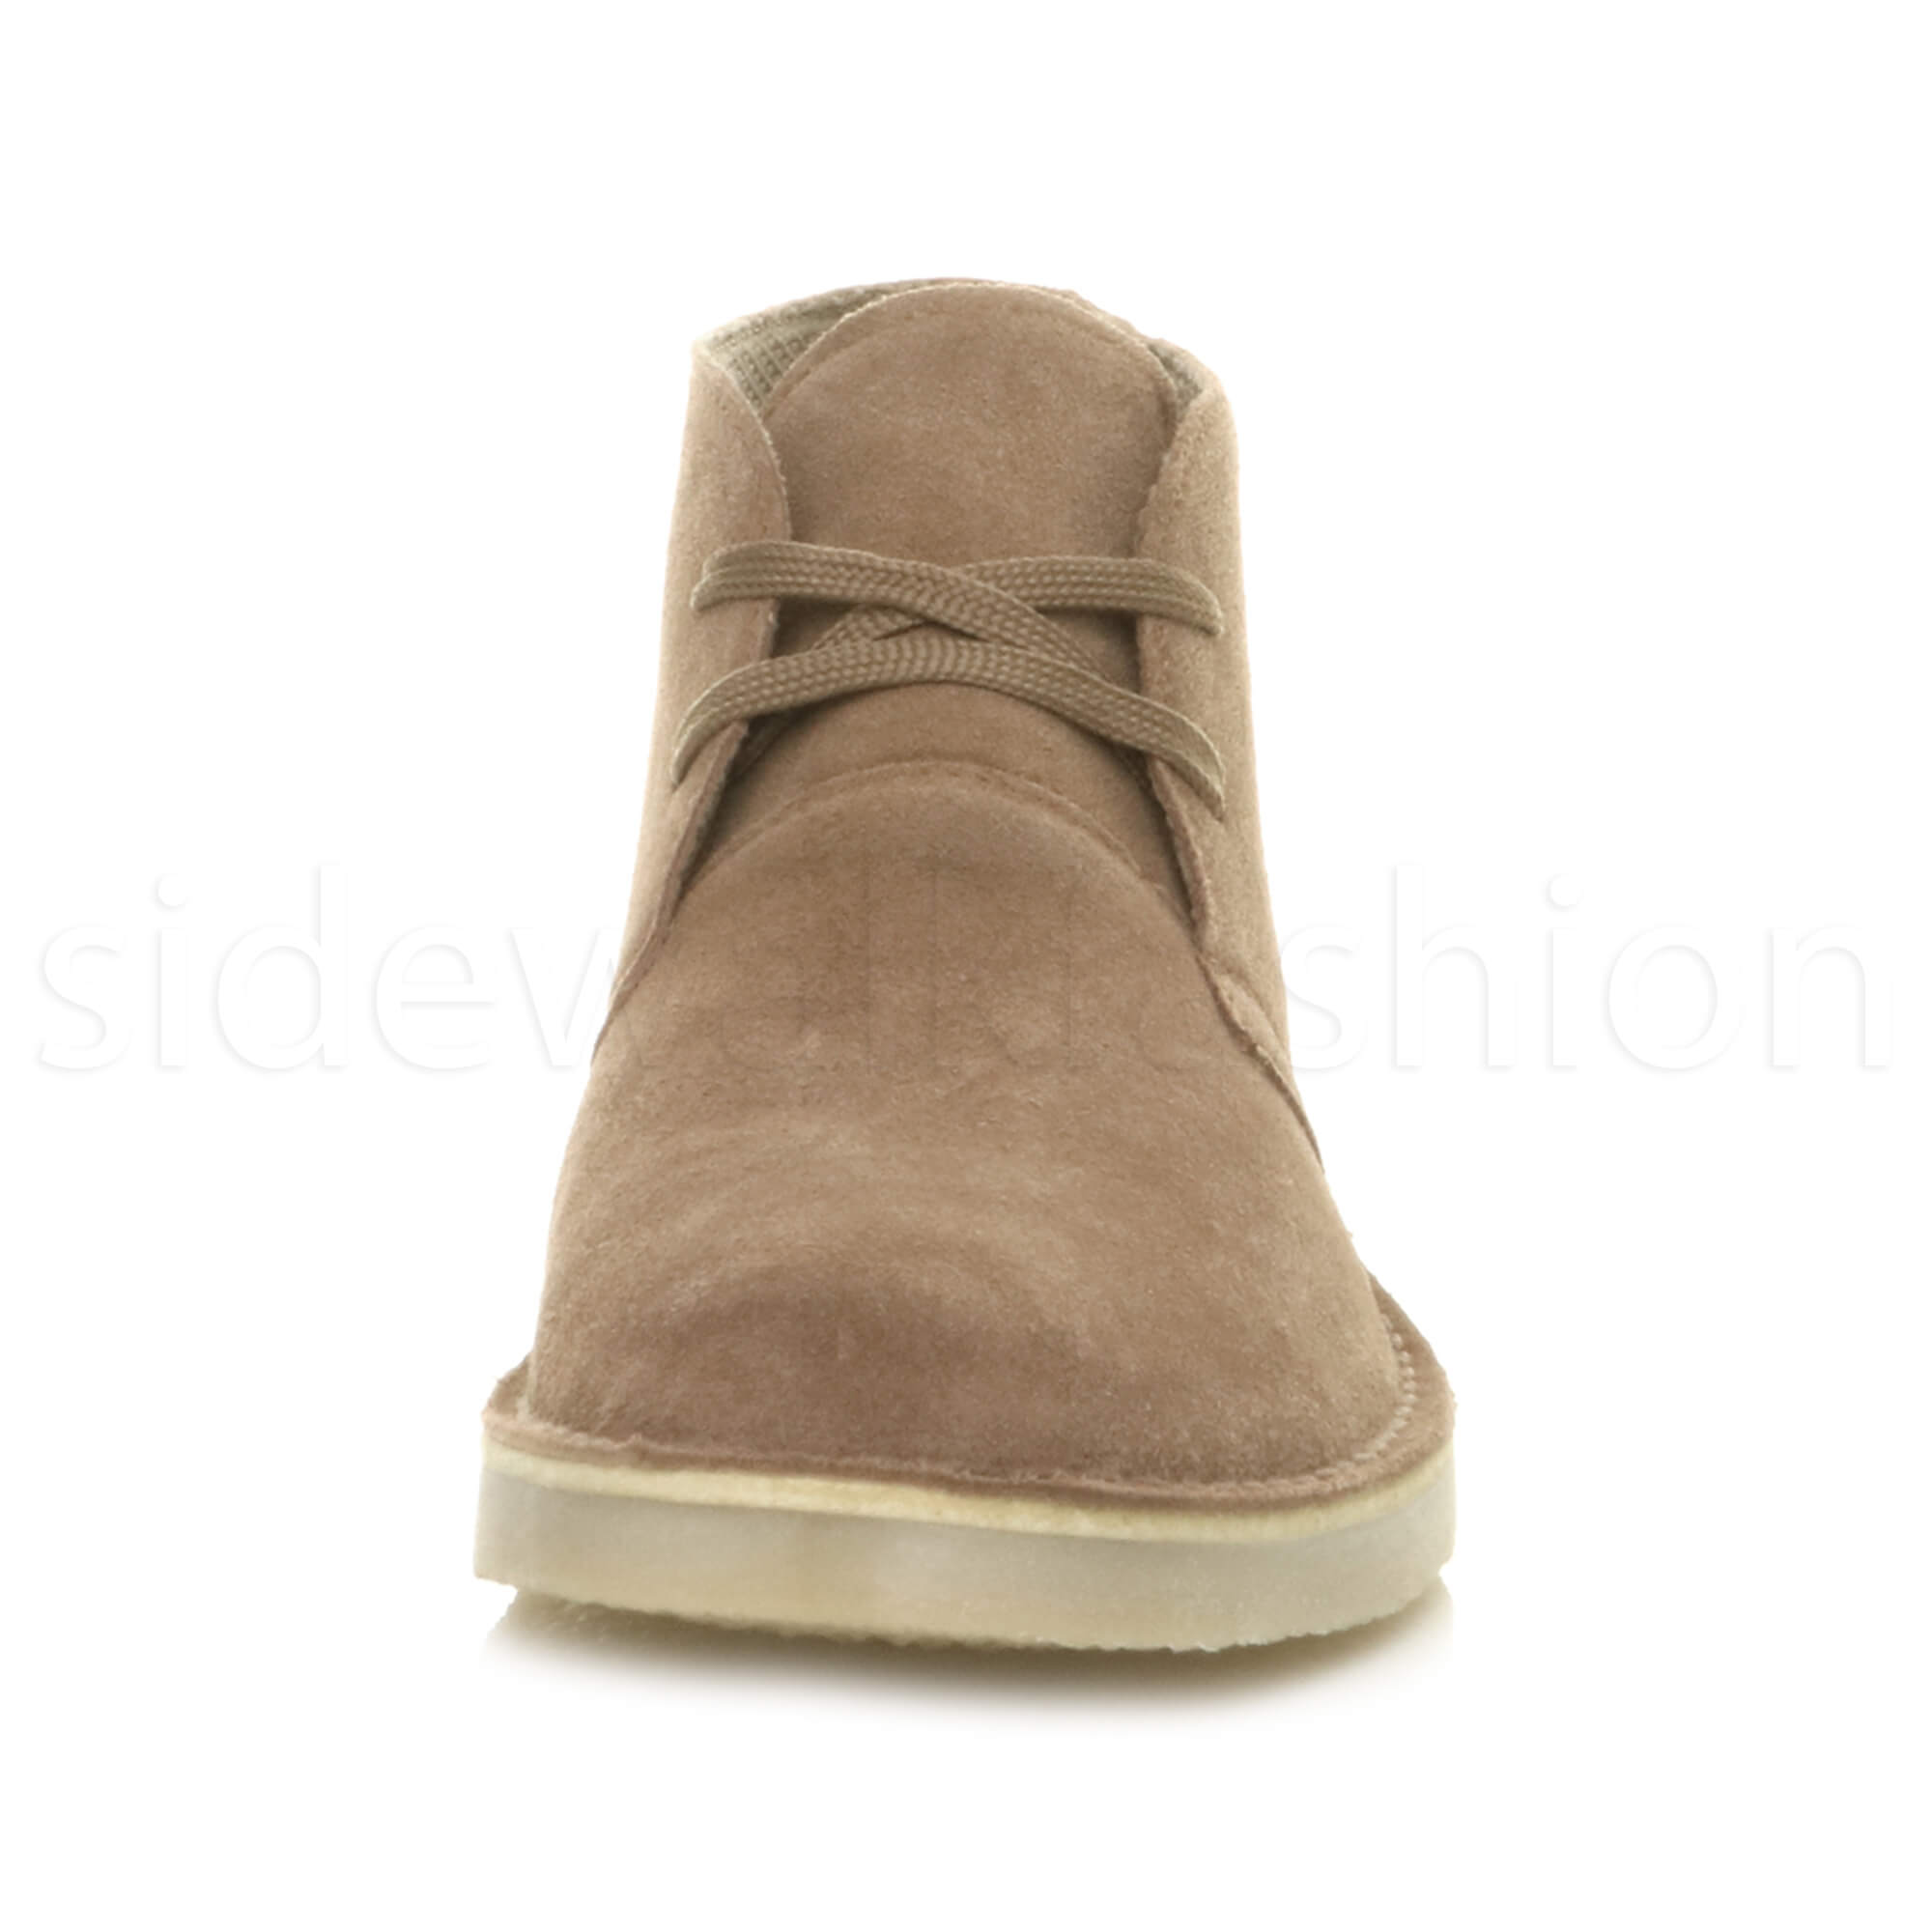 Mens-lace-up-rubber-sole-suede-ankle-chukka-desert-boots-classic-shoes-size thumbnail 35